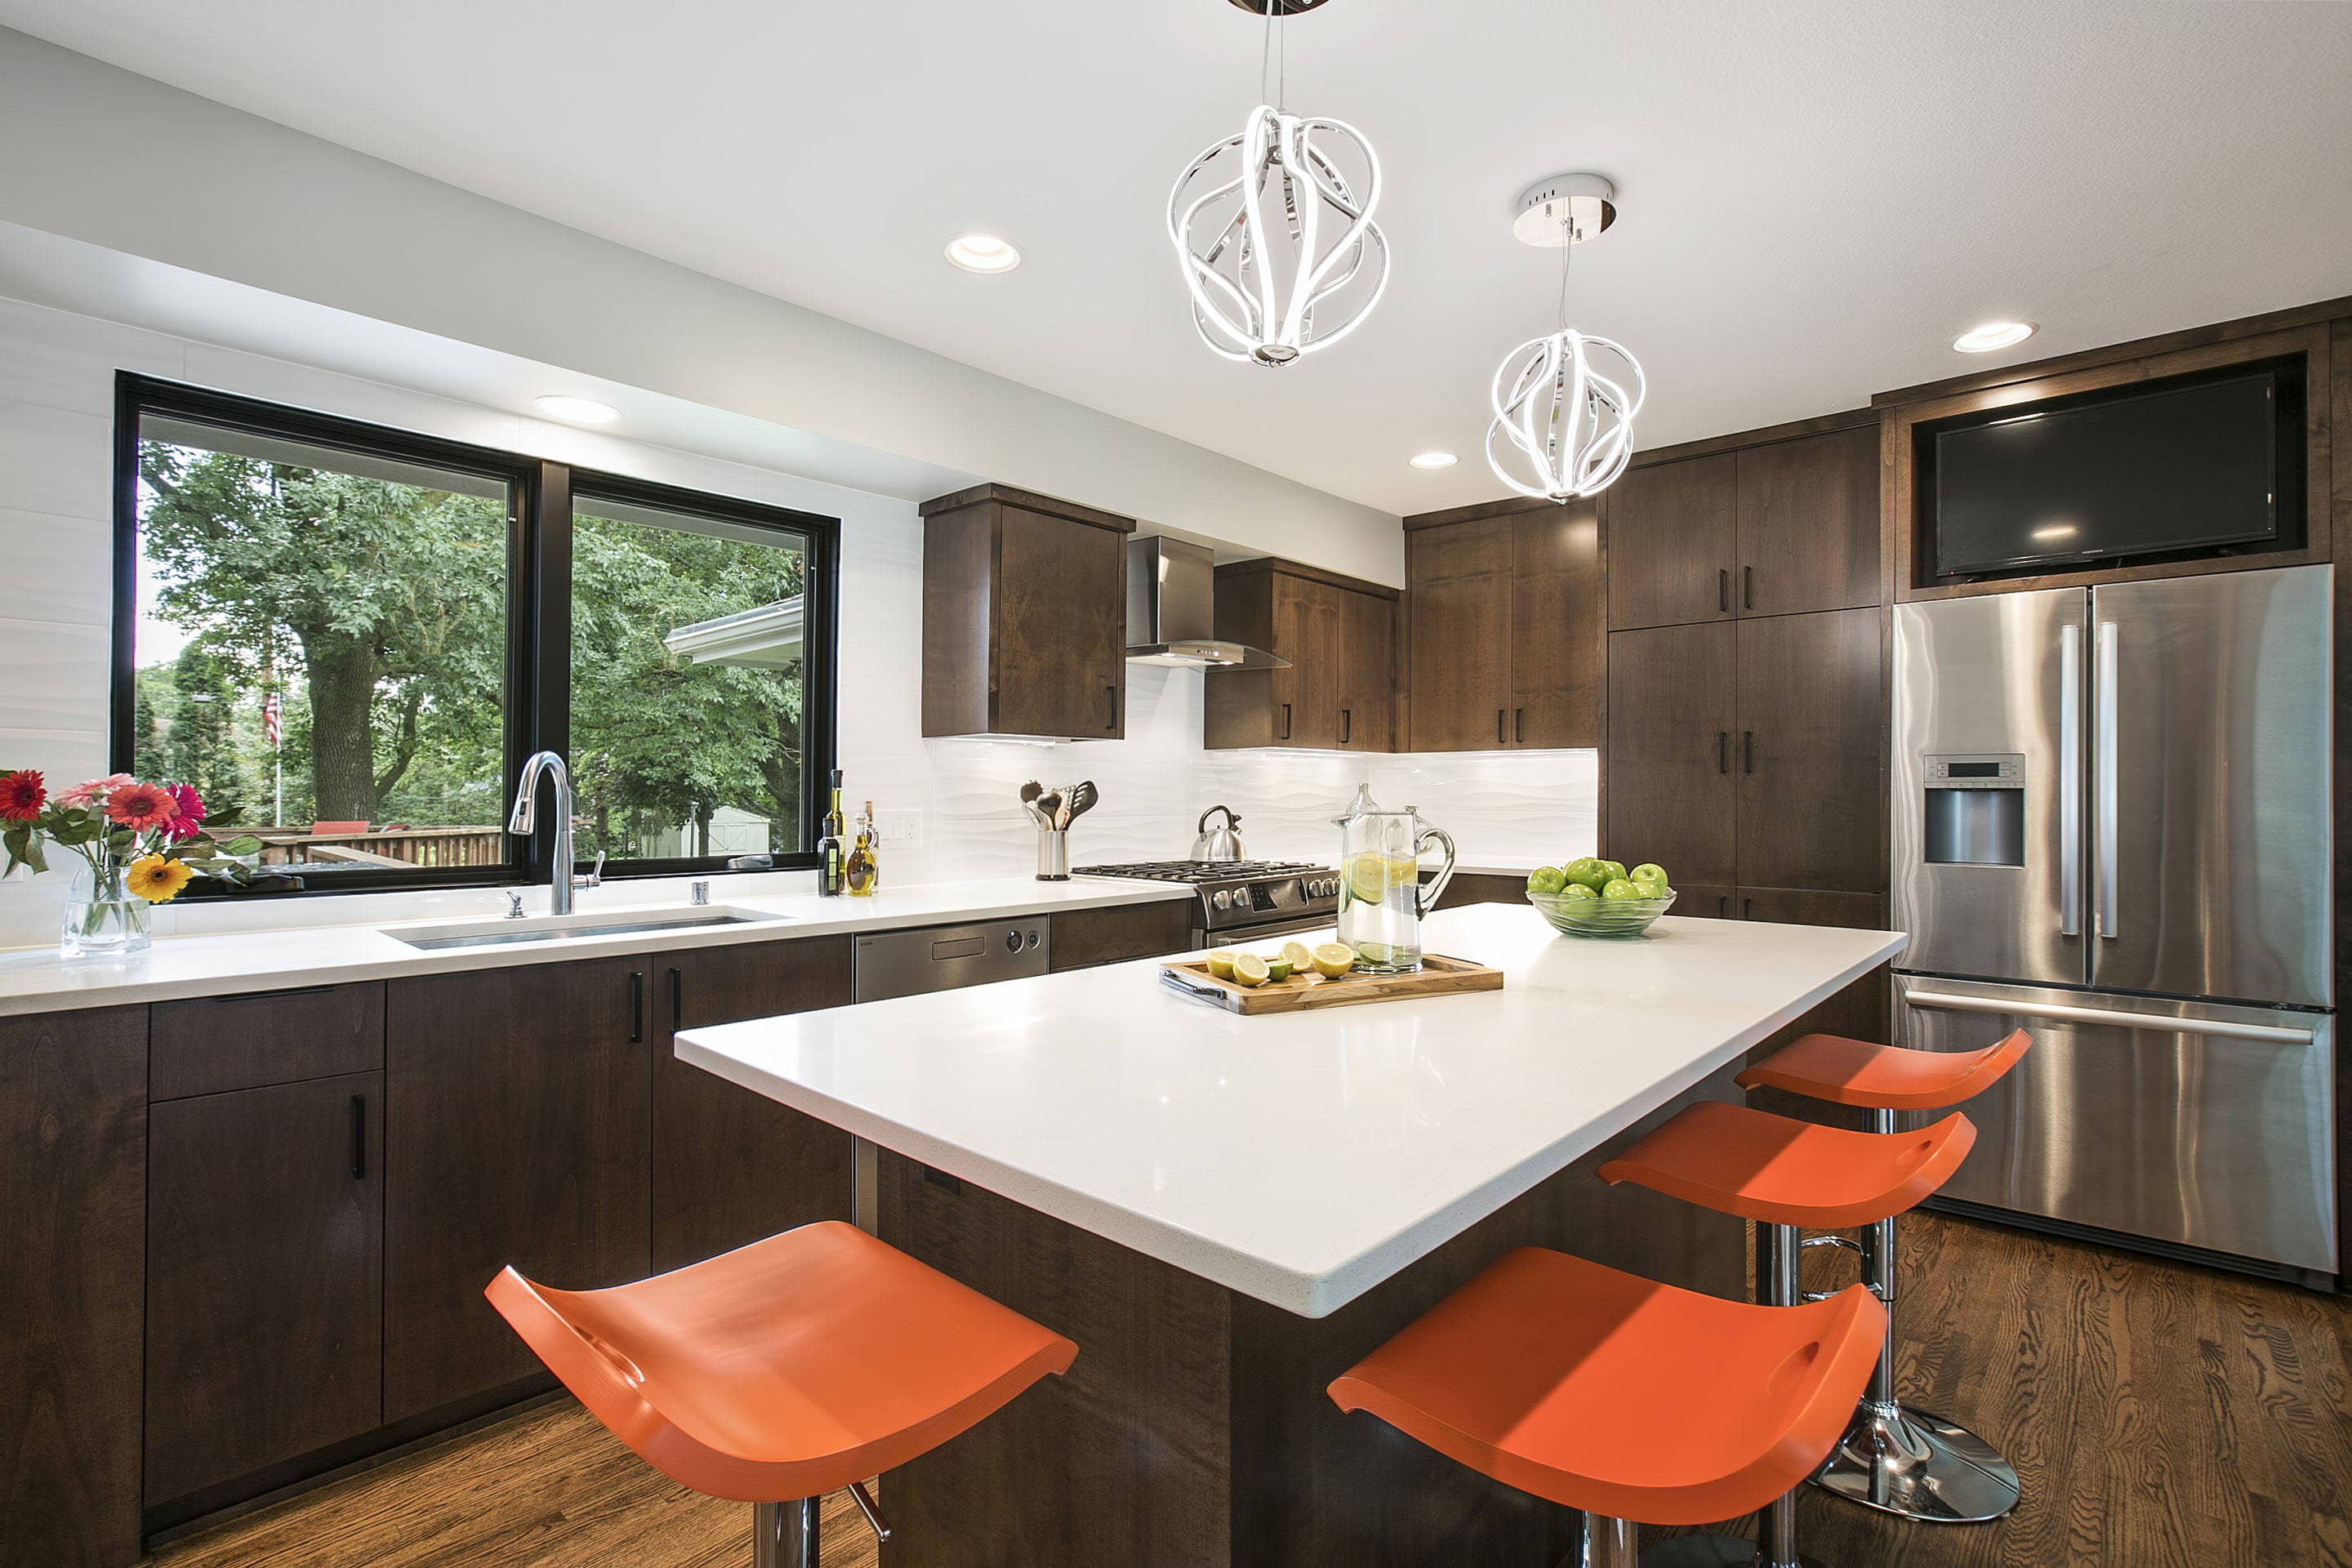 Kitchen Remodeling Gallery & Portfolio | James Barton Design-Build